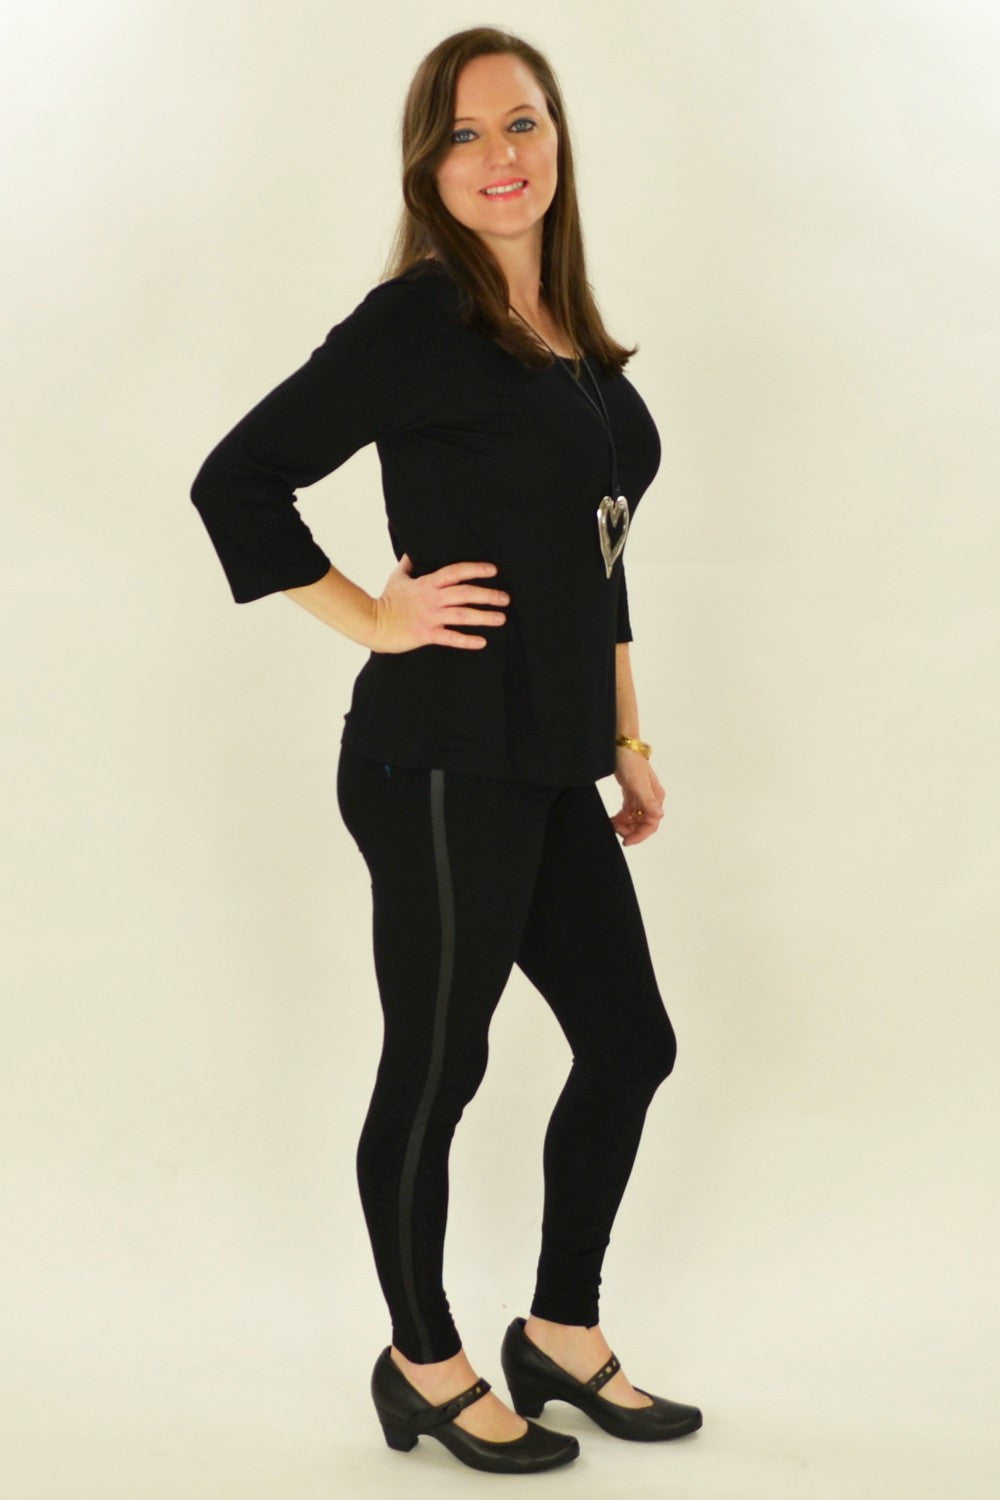 Black & Bling Cotton Leggings - at I Love Tunics @ www.ilovetunics.com = Number One! Tunics Destination